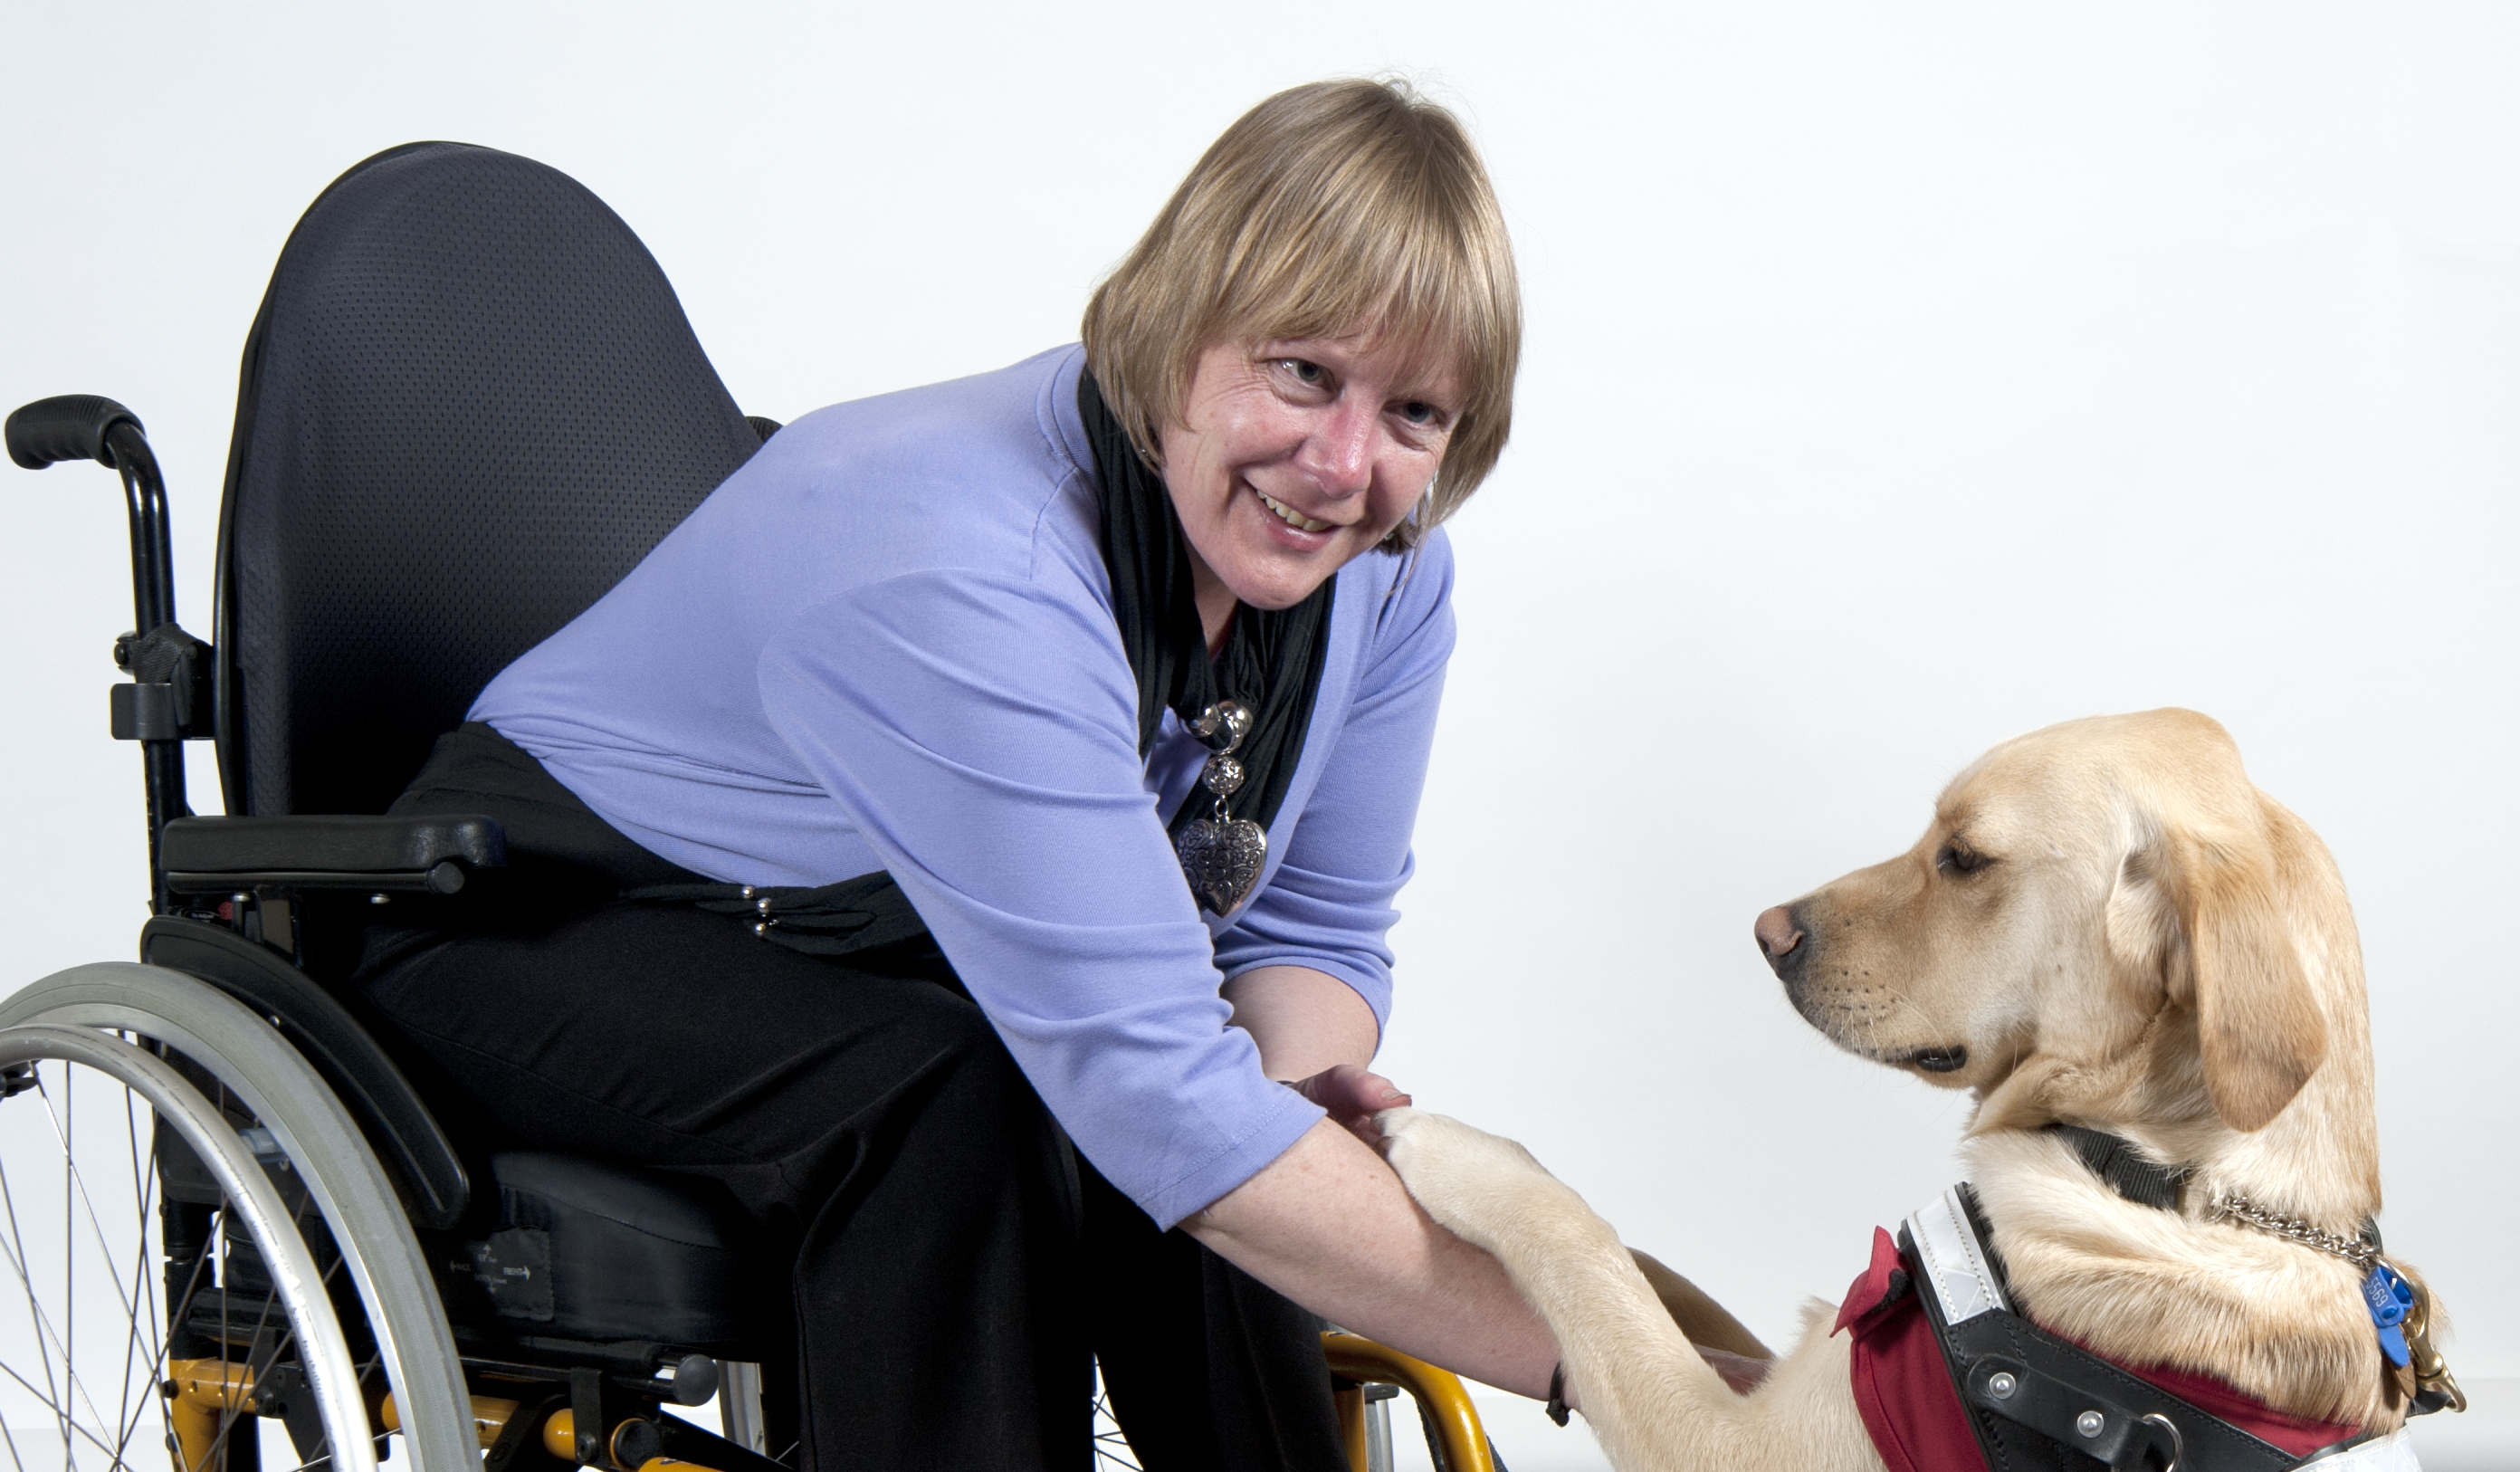 A woman is sitting in a wheelchair smiling at the camera. She has light brow hair and is wearing a blue top and large heart pendant. She is leaning forward and shaking hands with her guide dog.